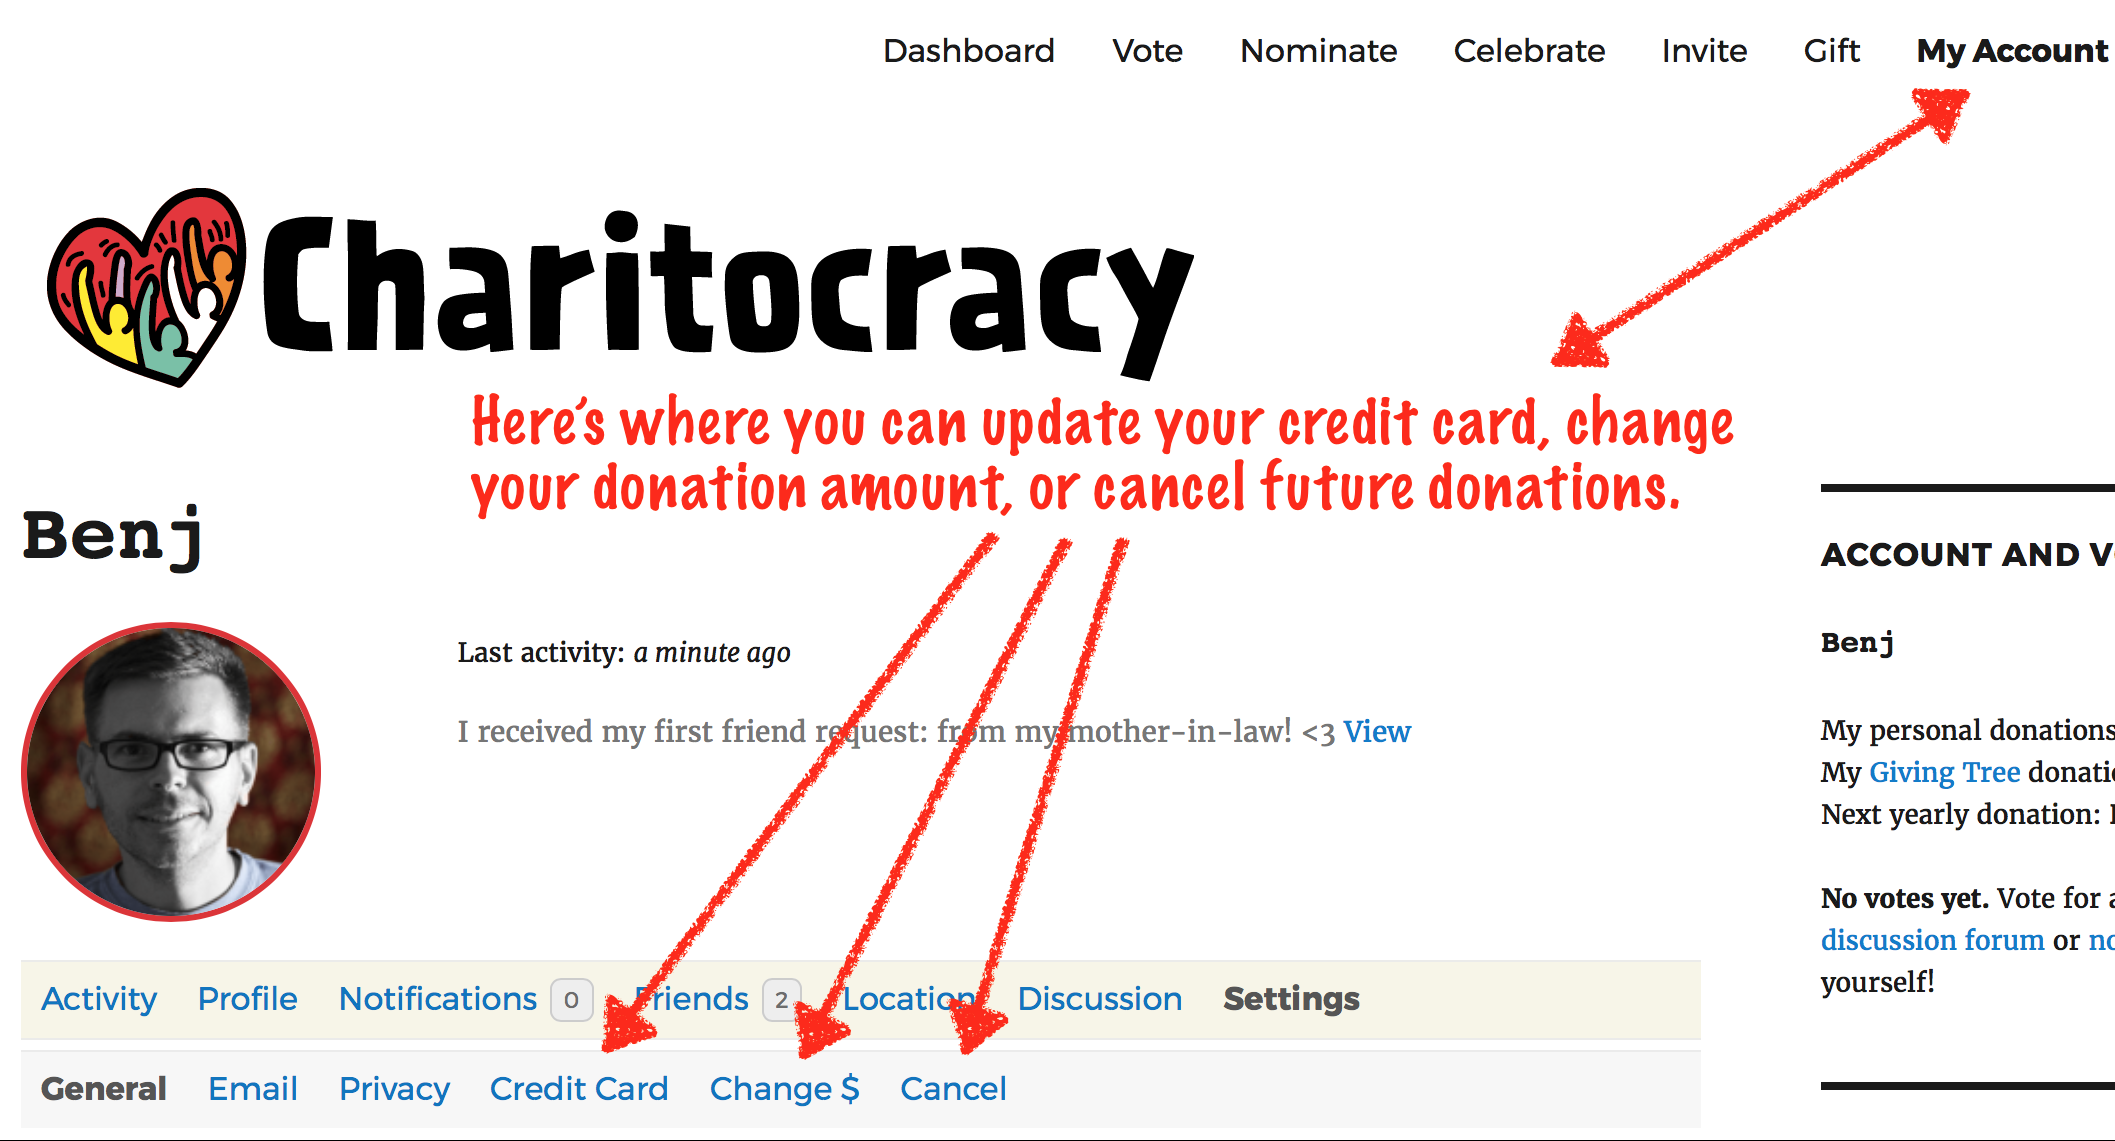 Here's where you can update your credit card, change your annual donation amount, or cancel future donations